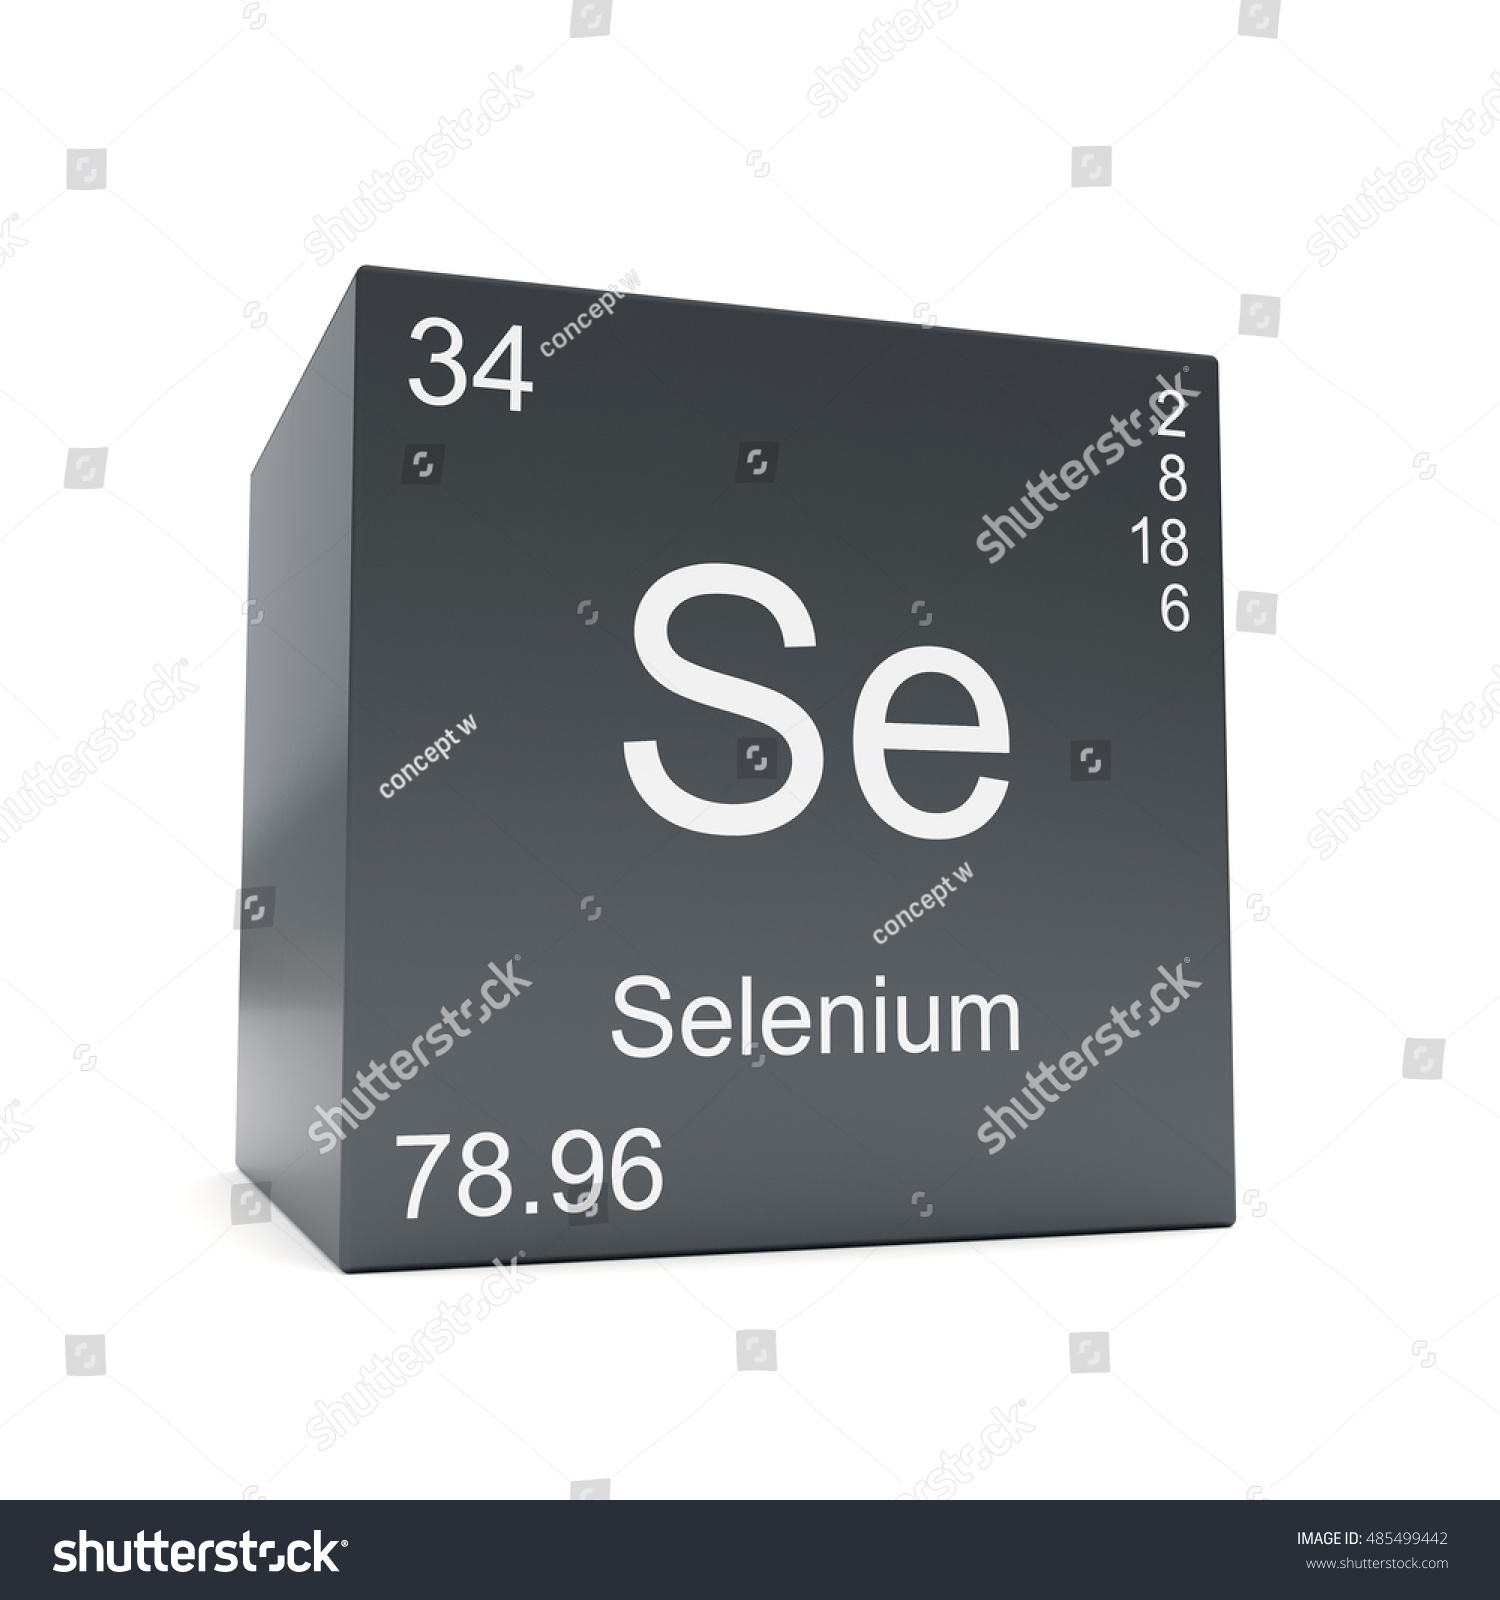 Selenium chemical element symbol periodic table stock illustration selenium chemical element symbol from the periodic table displayed on black cube 3d render buycottarizona